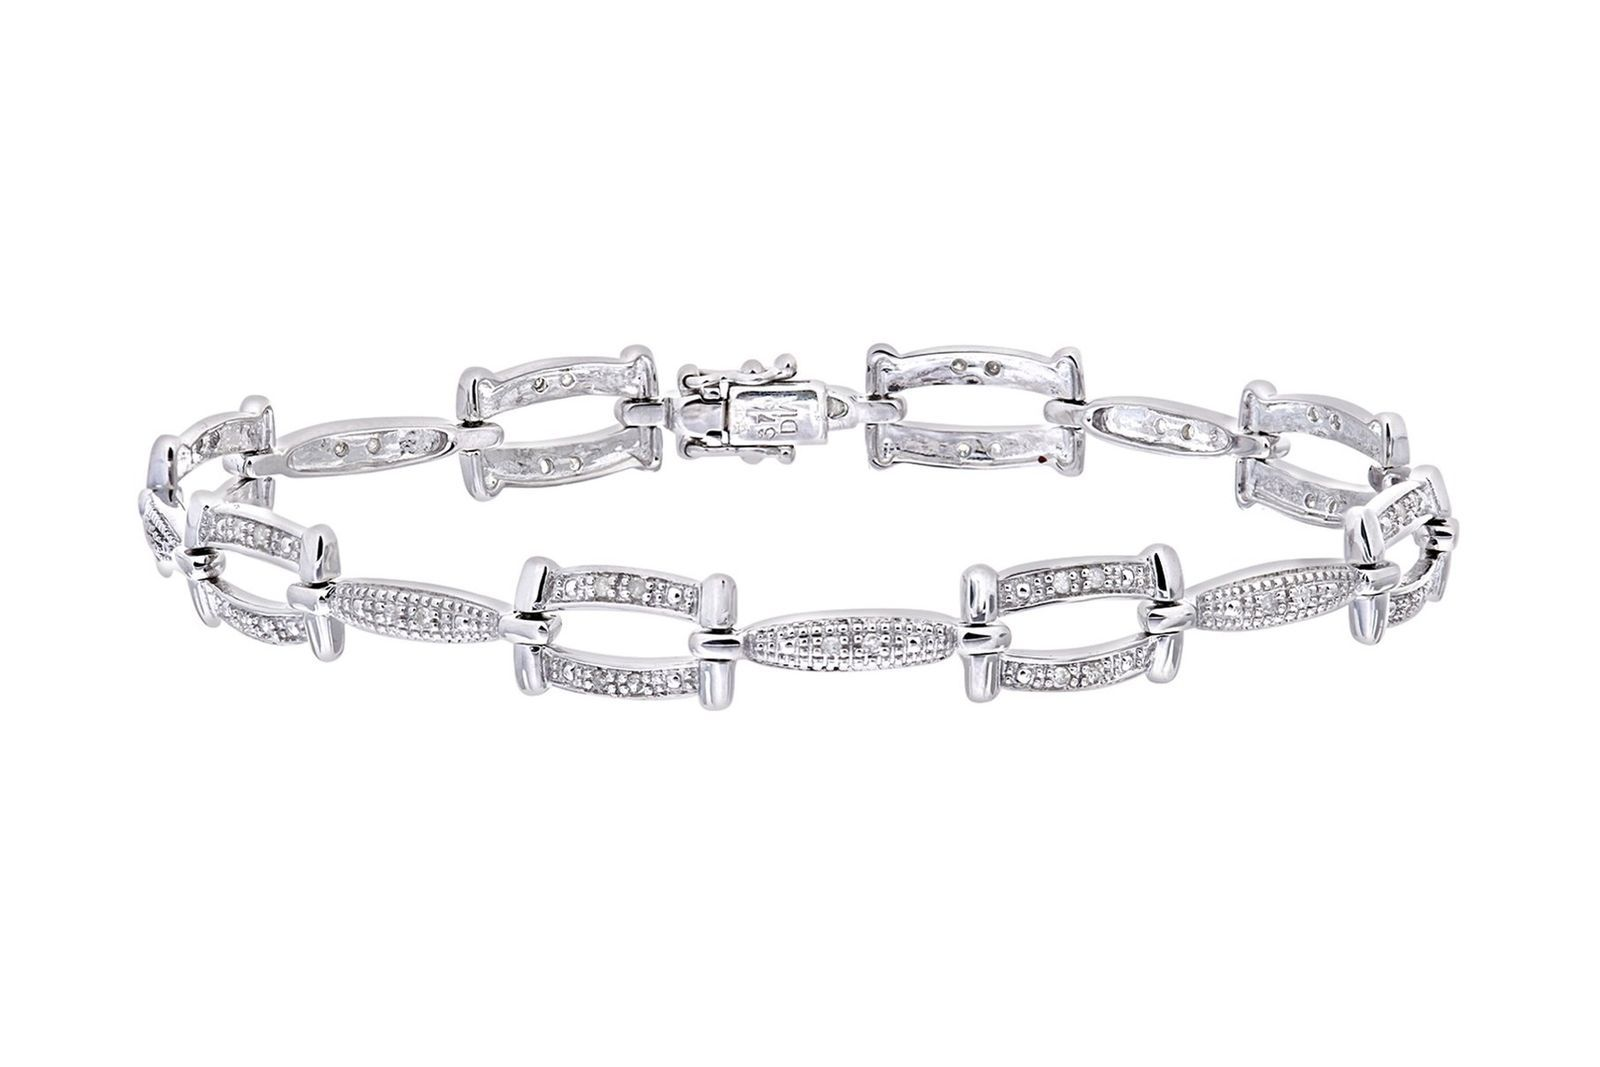 Naava Women's 9 ct White Gold Diamond Twist Link Bracelet WRvkokWf4b